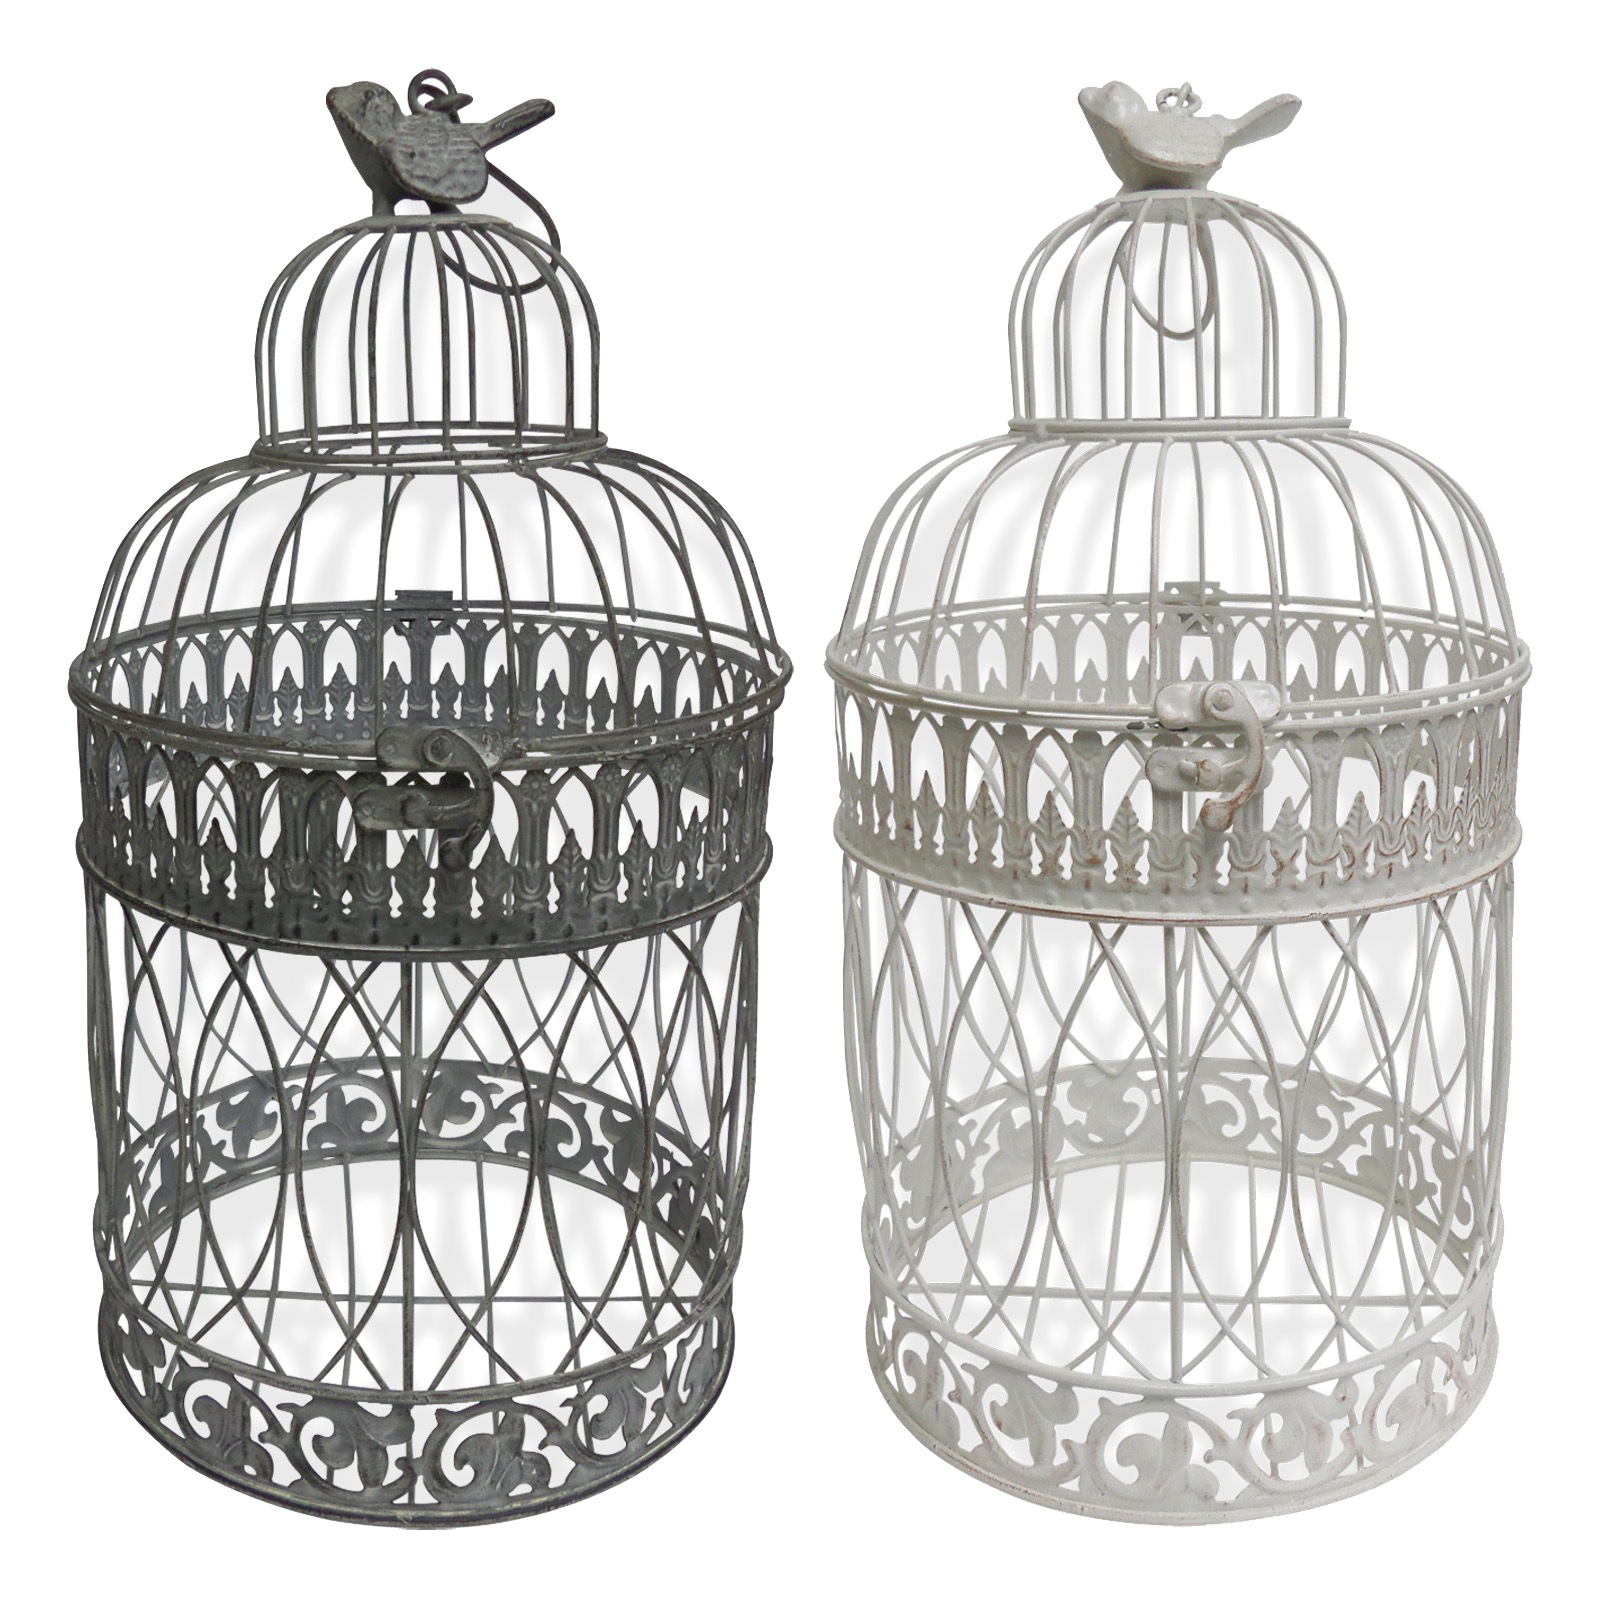 1600x1600 Buy The Assorted Large Tabletop Birdcage By